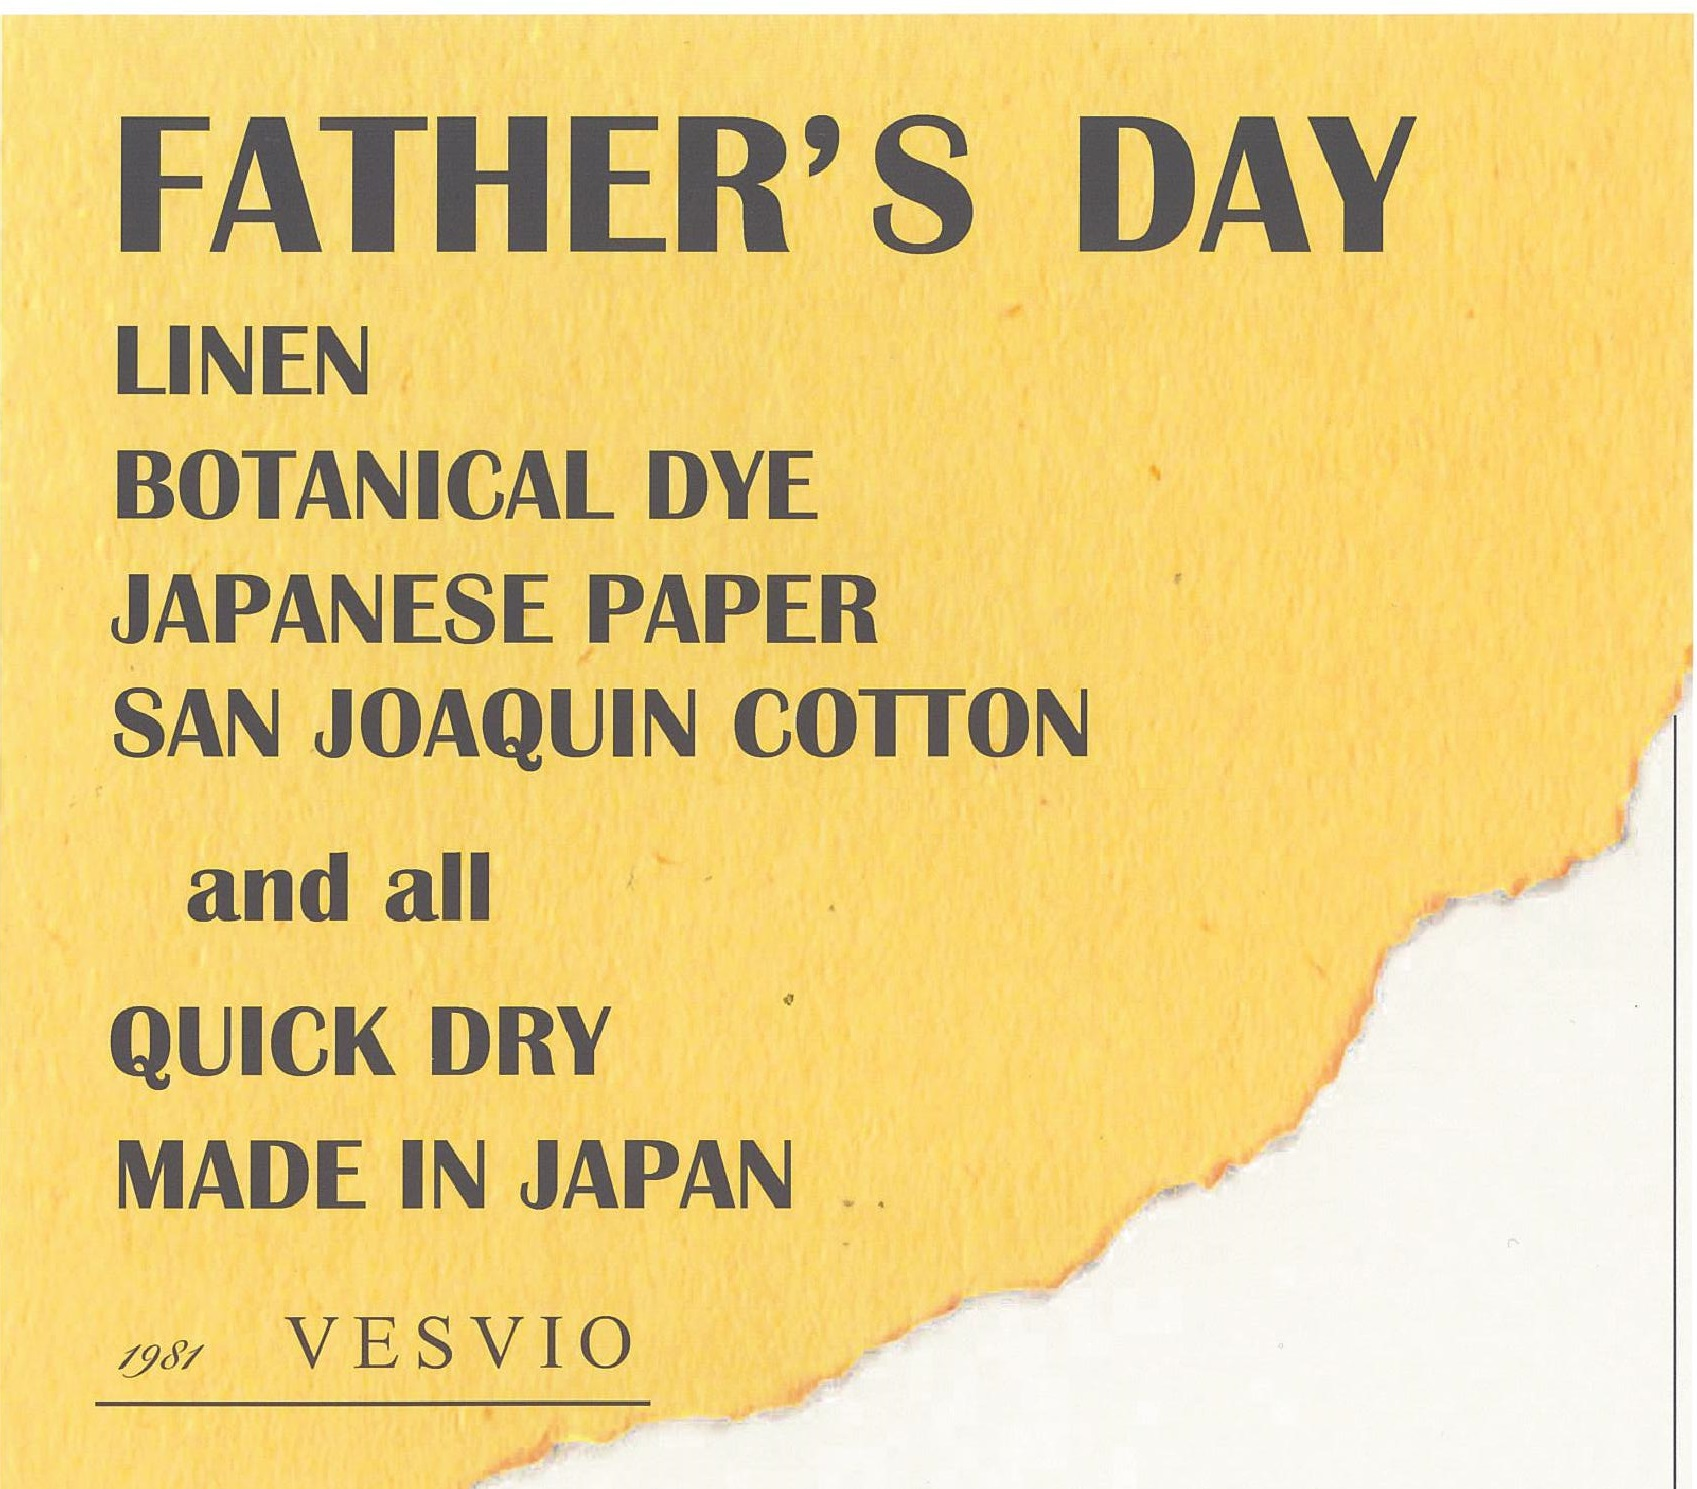 VESVIOの「FATHER'S DAY」